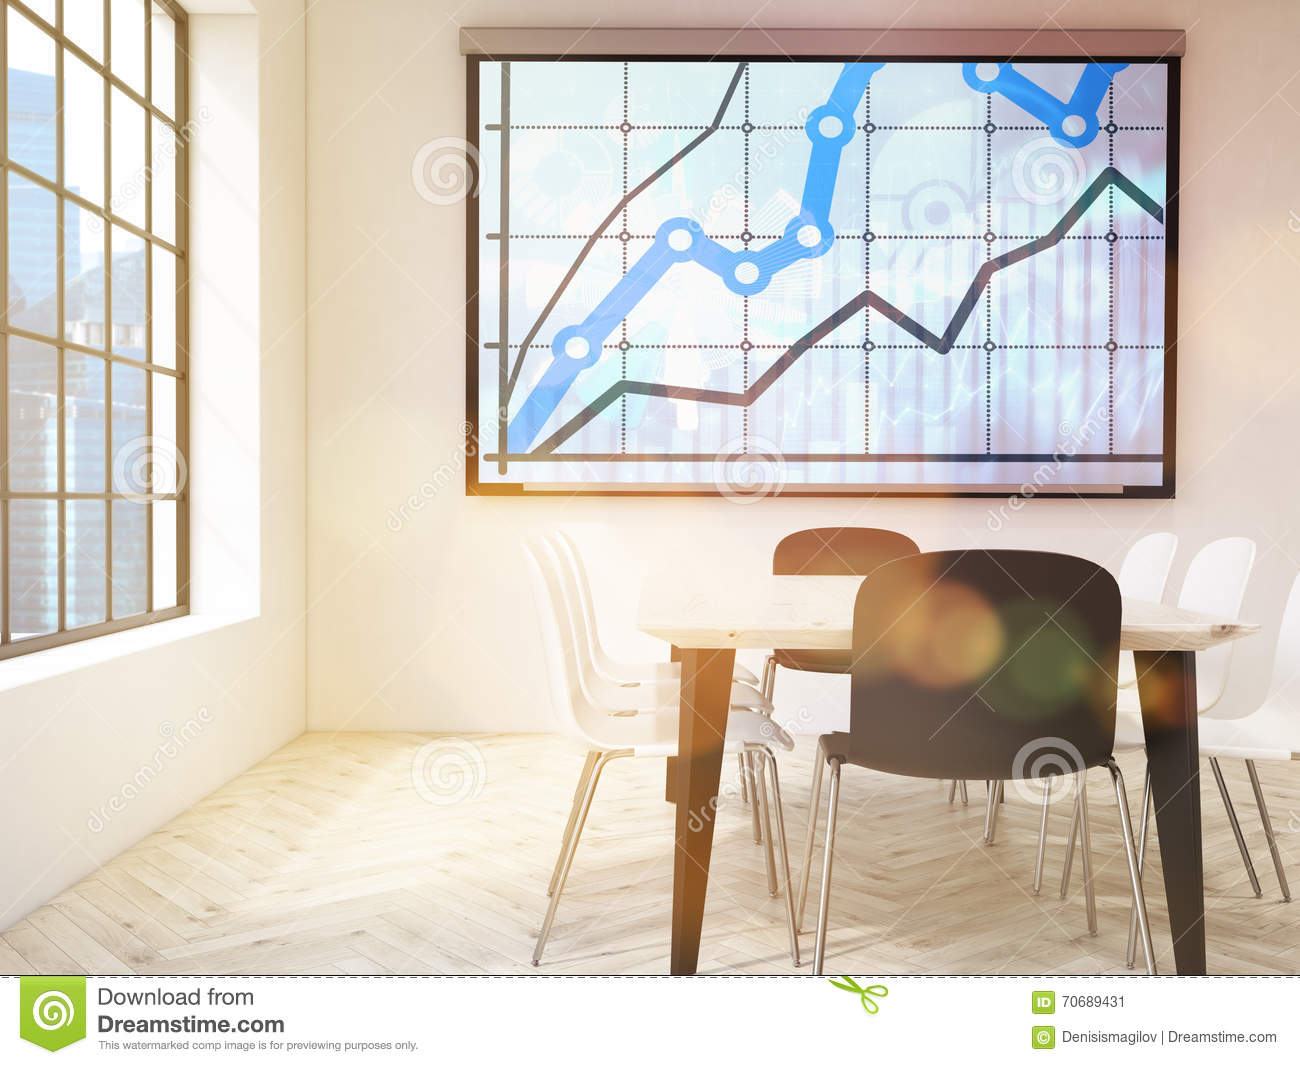 floor chairs singapore chair covers sri lanka business graph and view stock illustration